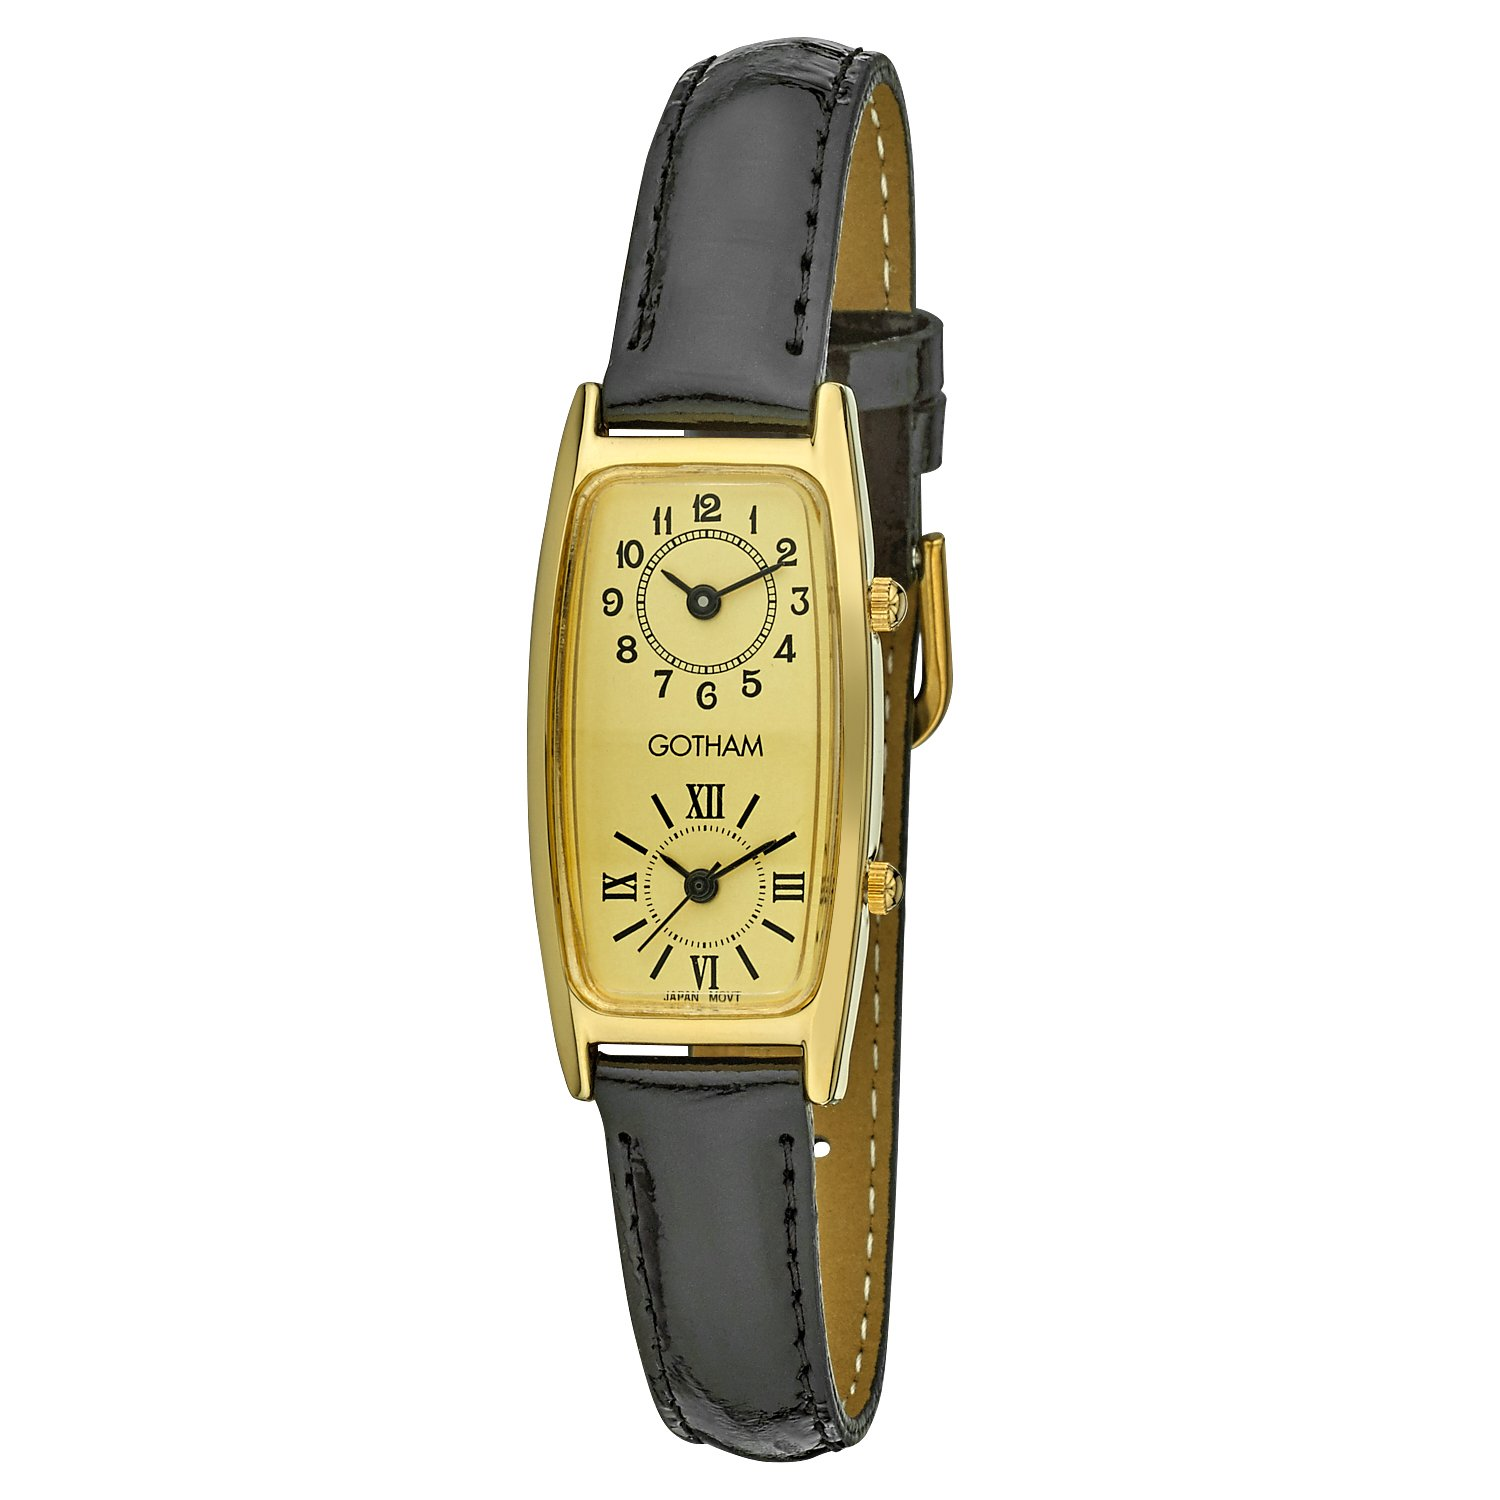 Gotham Women's Gold-Tone Dual Time Zone Leather Strap Watch # GWC15092GBK